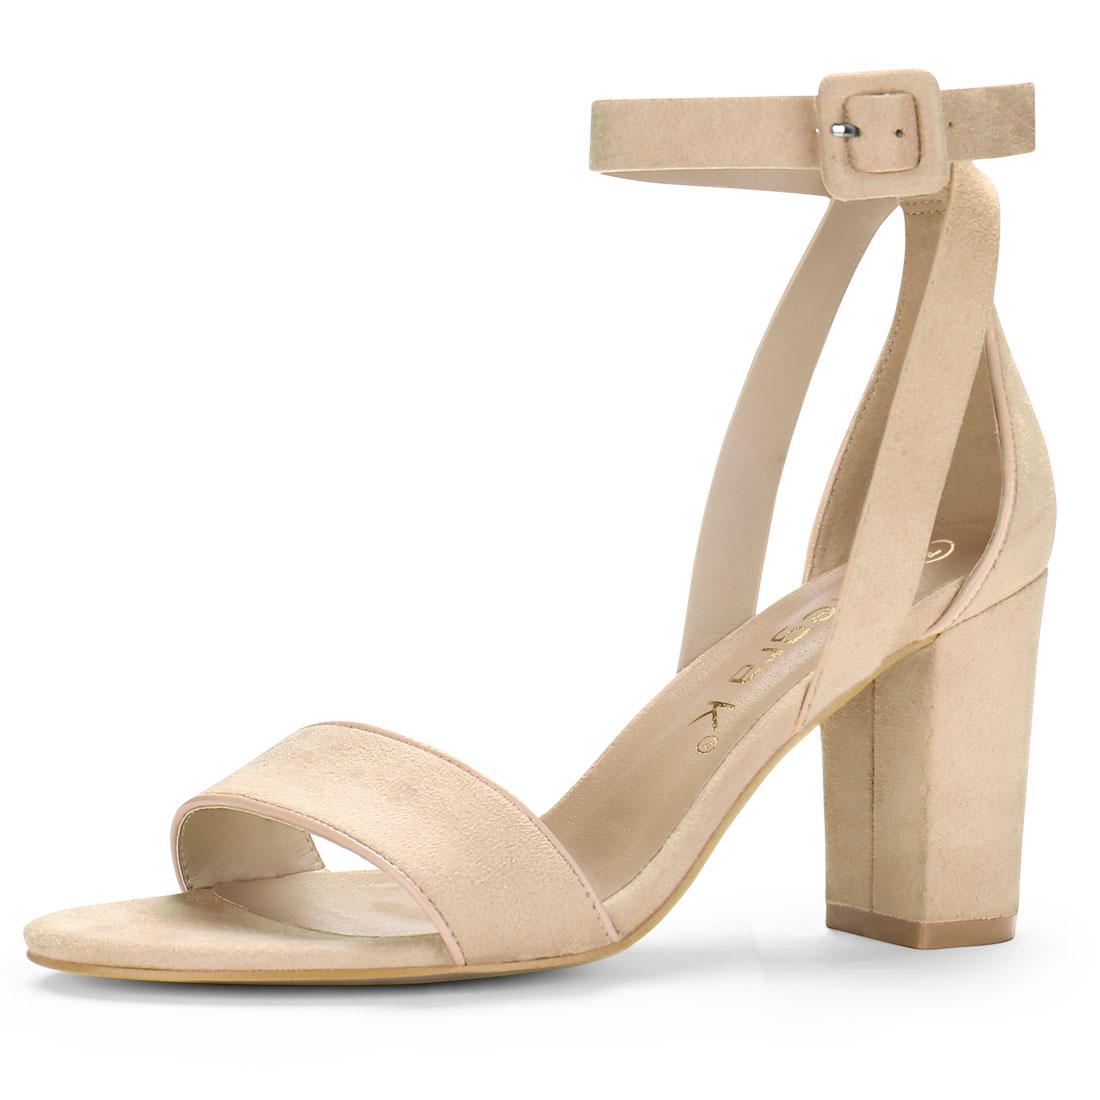 Women PU Panel Piped Chunky Heel Ankle Strap Sandals Beige US 11